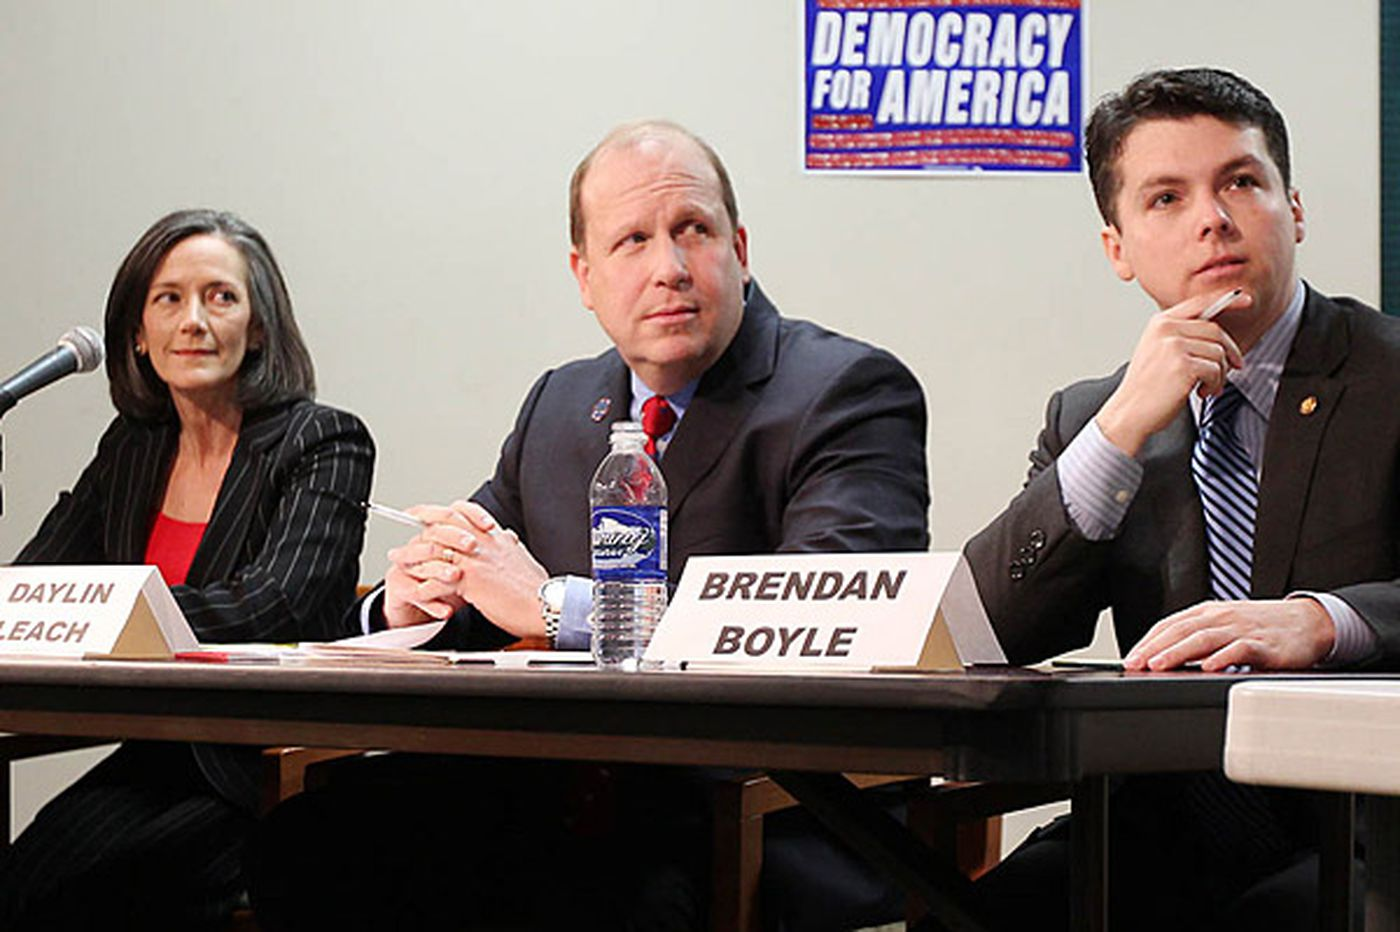 Dems spar on school vouchers, Social Security and abortion in 13th Congressional District